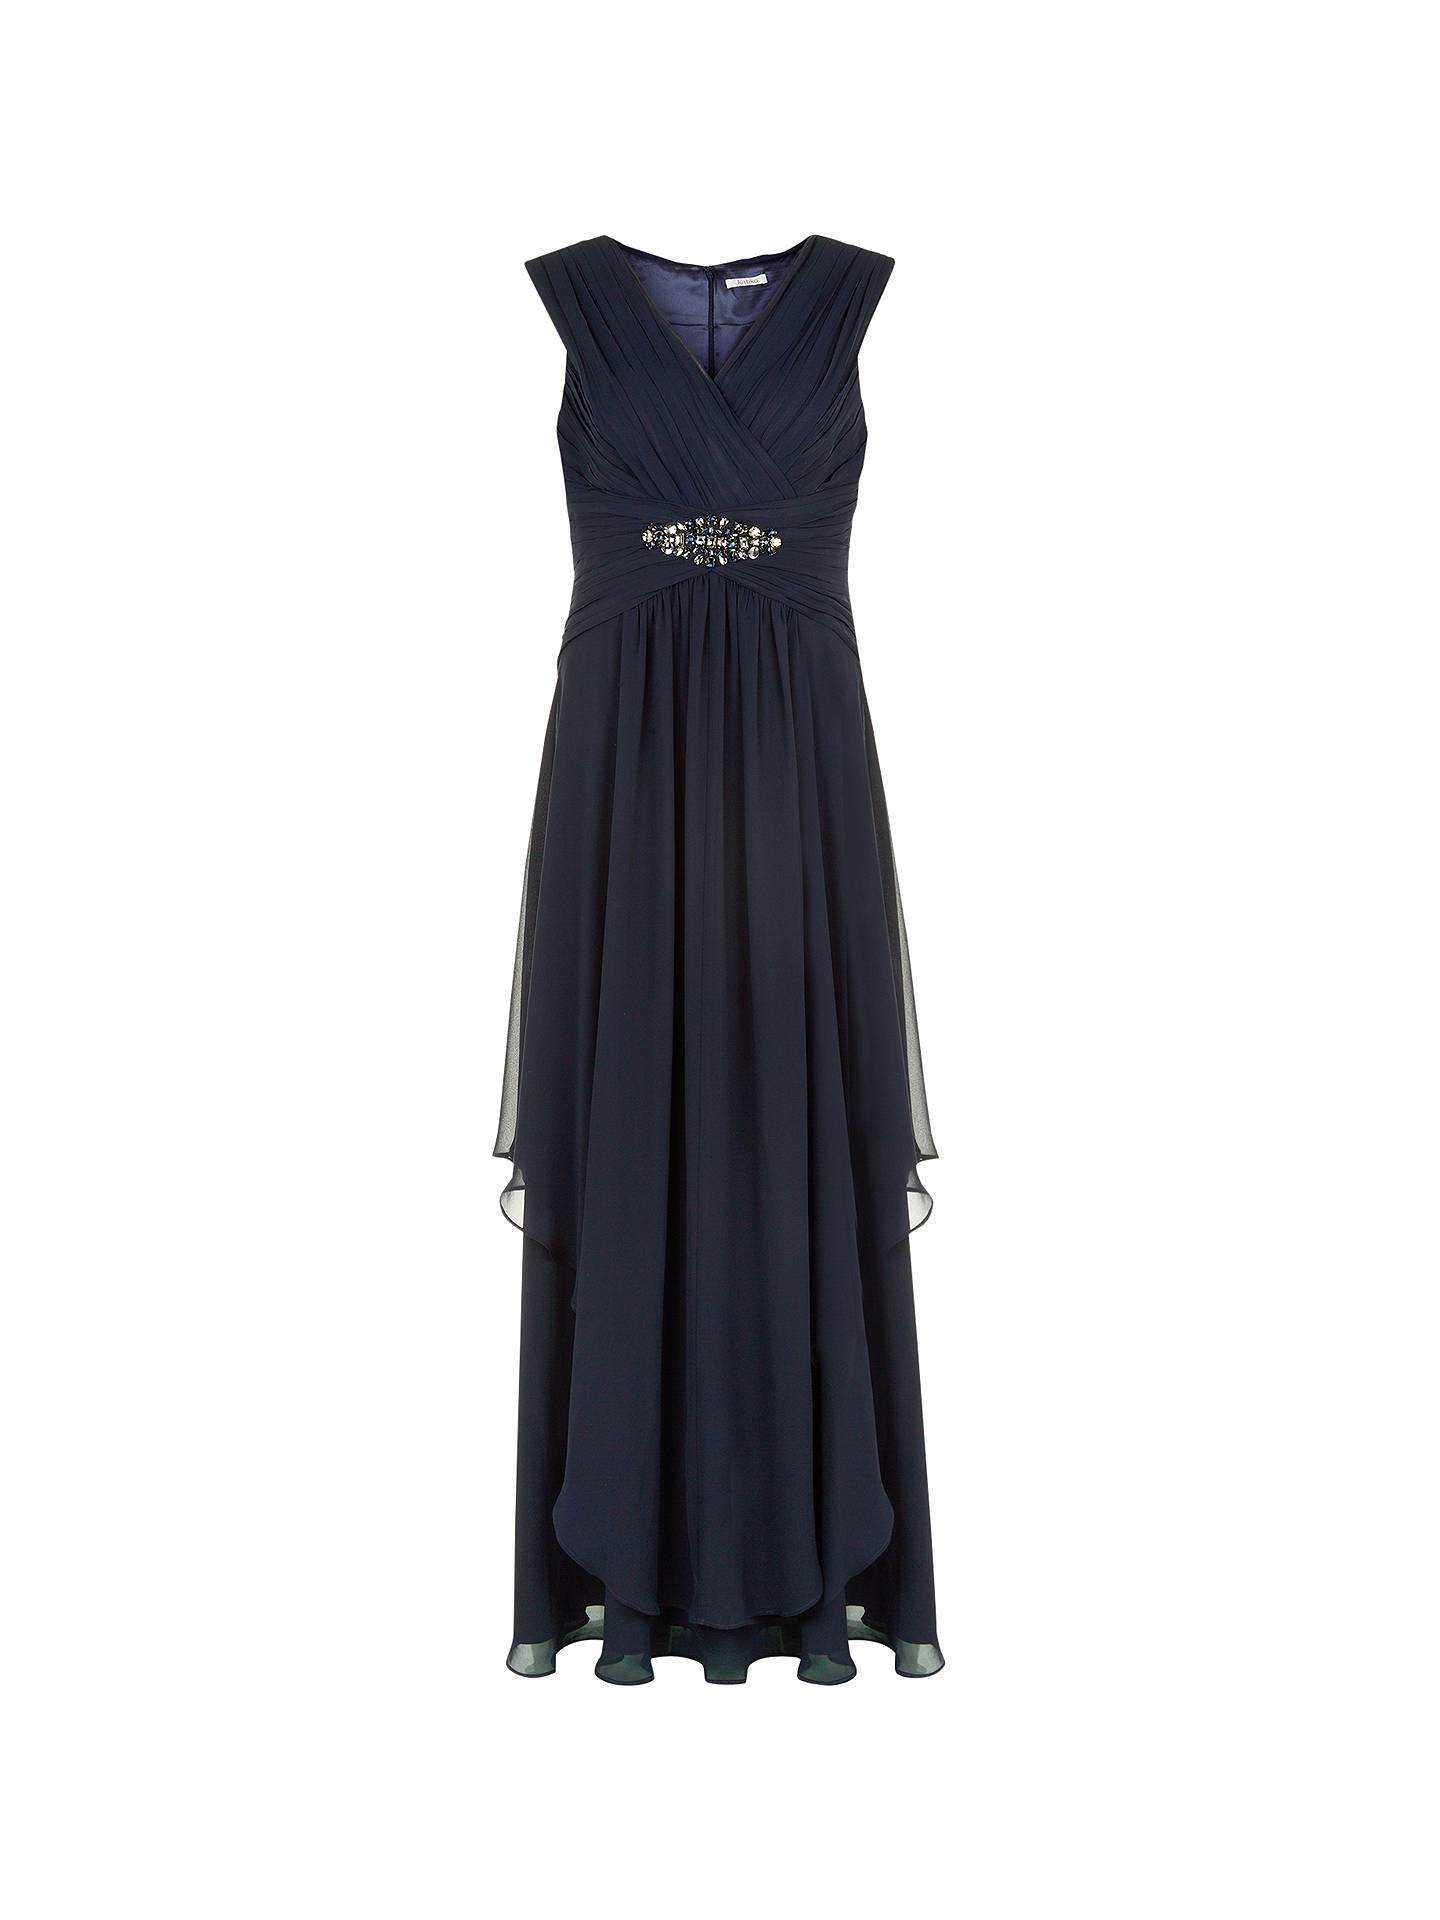 official site sale online lower price with Kaliko Embellished Maxi Dress, Navy at John Lewis & Partners